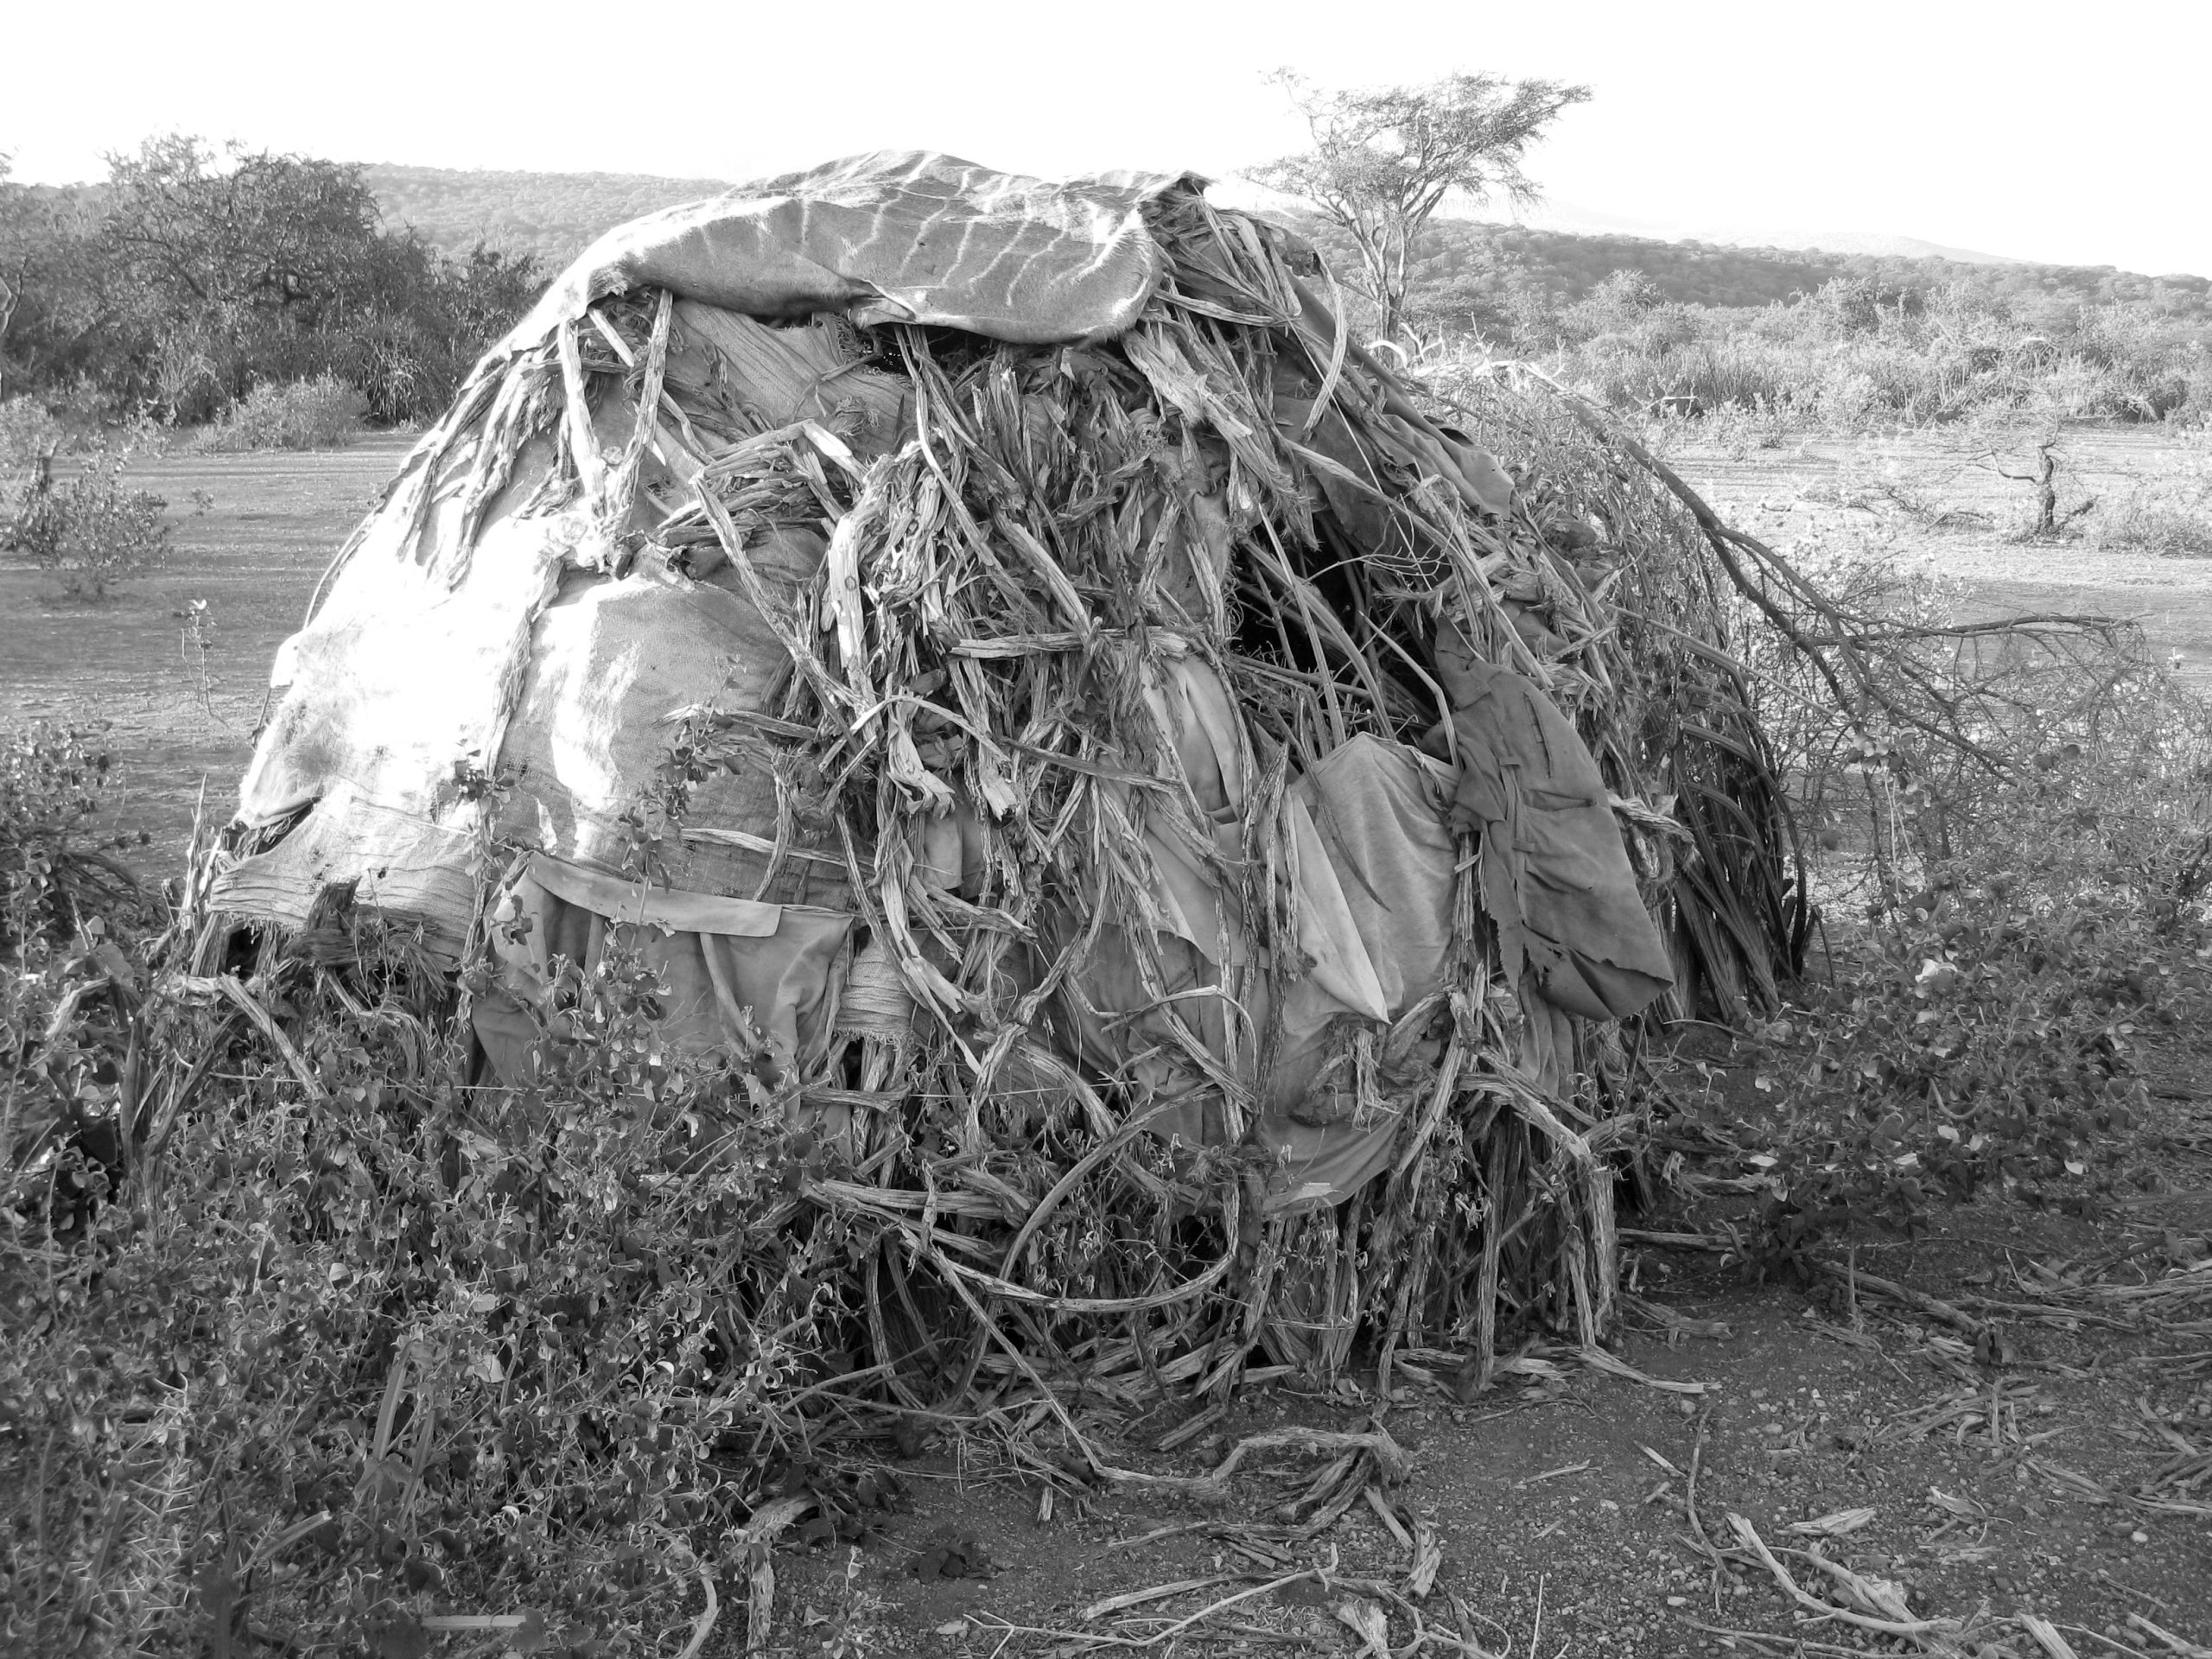 The Hadza tribe settlement style